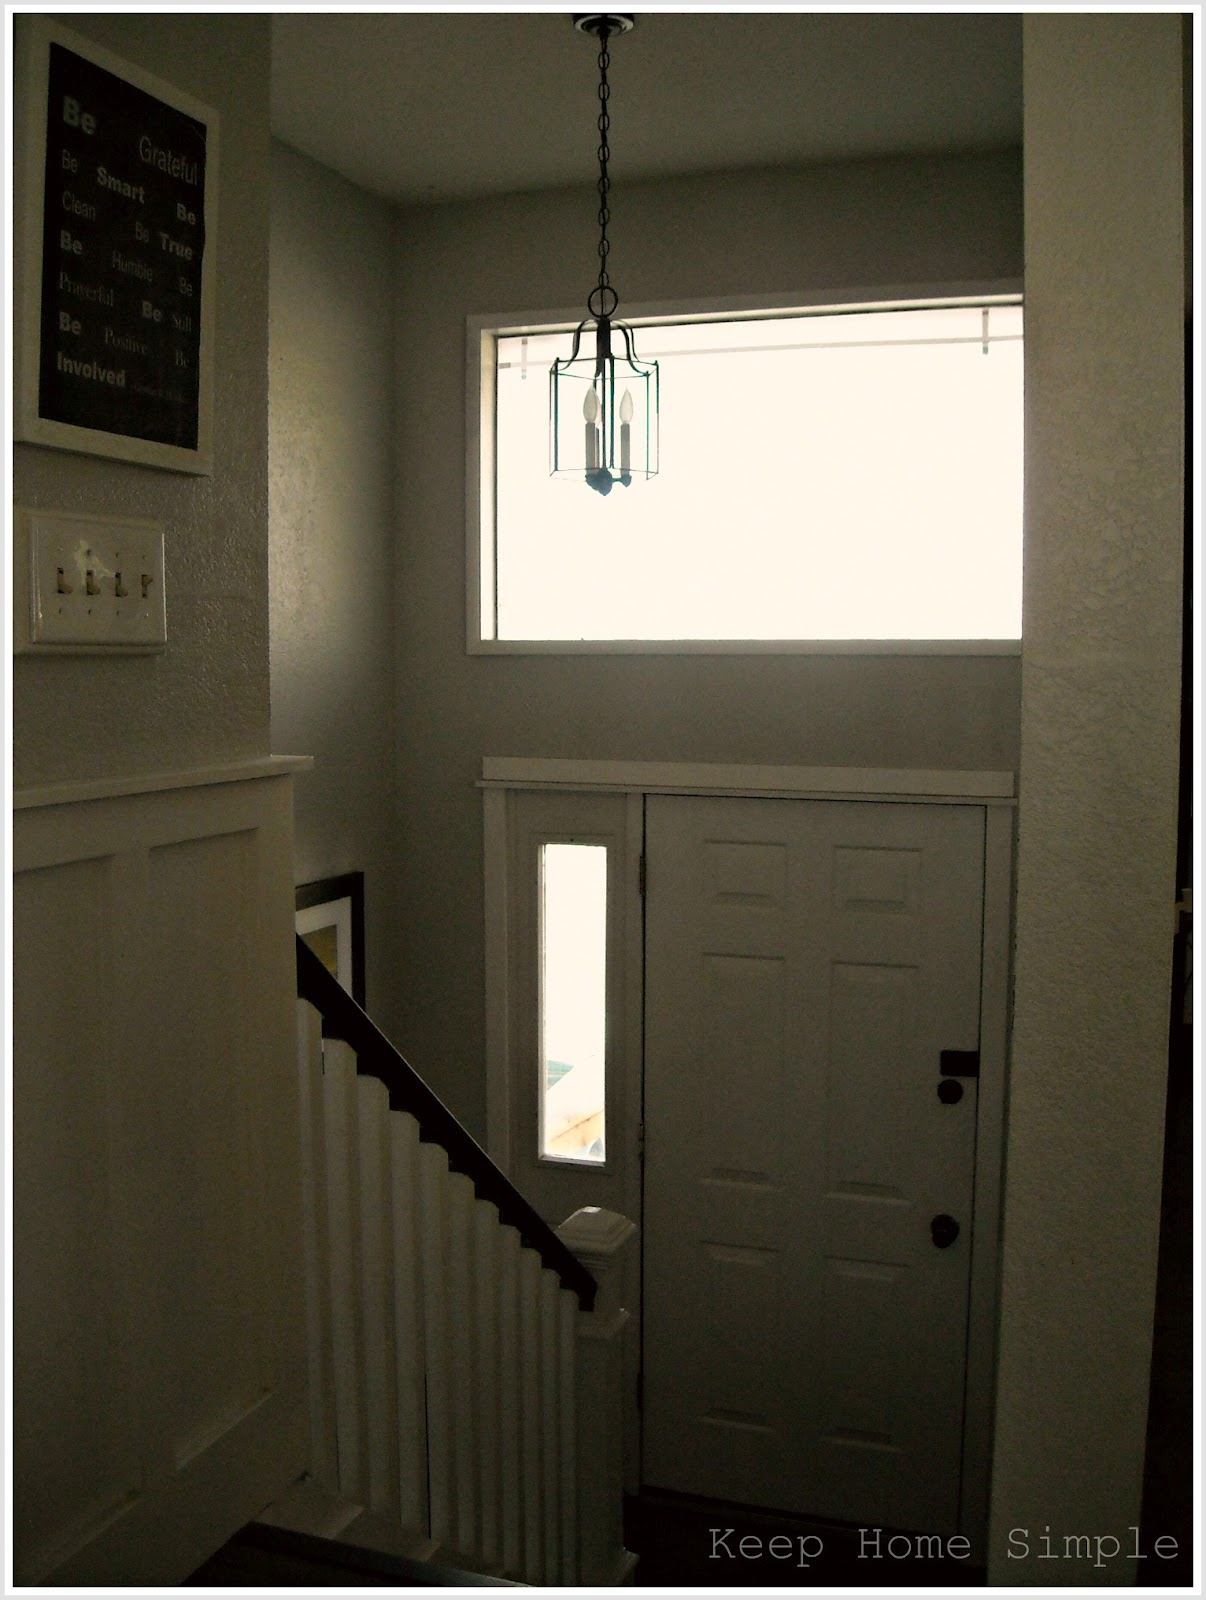 Keep Home Simple New Entry Light: Keep Home Simple: New Entry Light